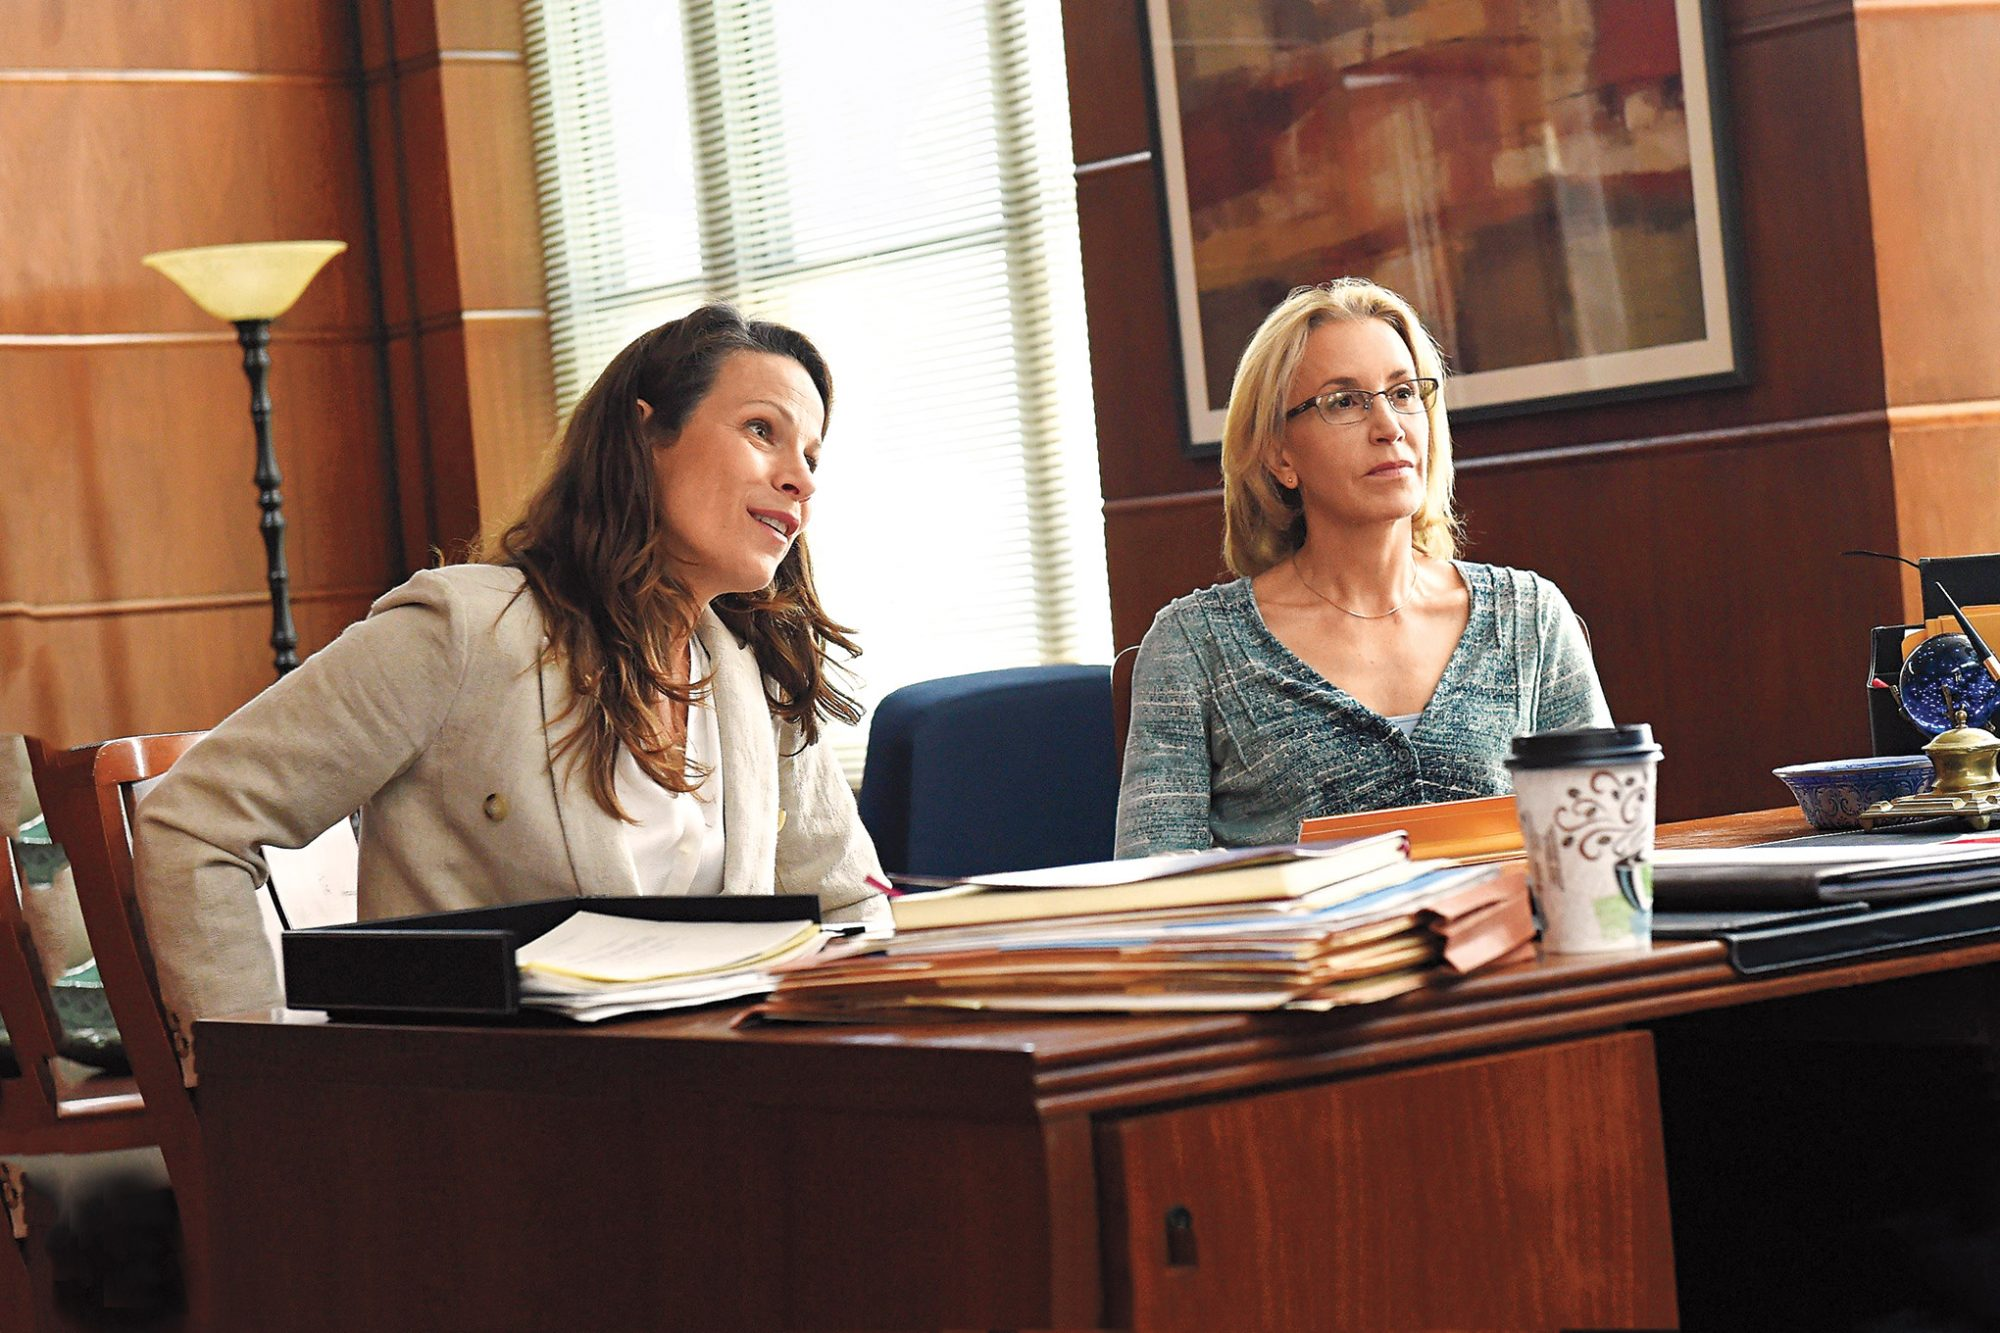 Lili Taylor and Felicity Huffman in American Crime